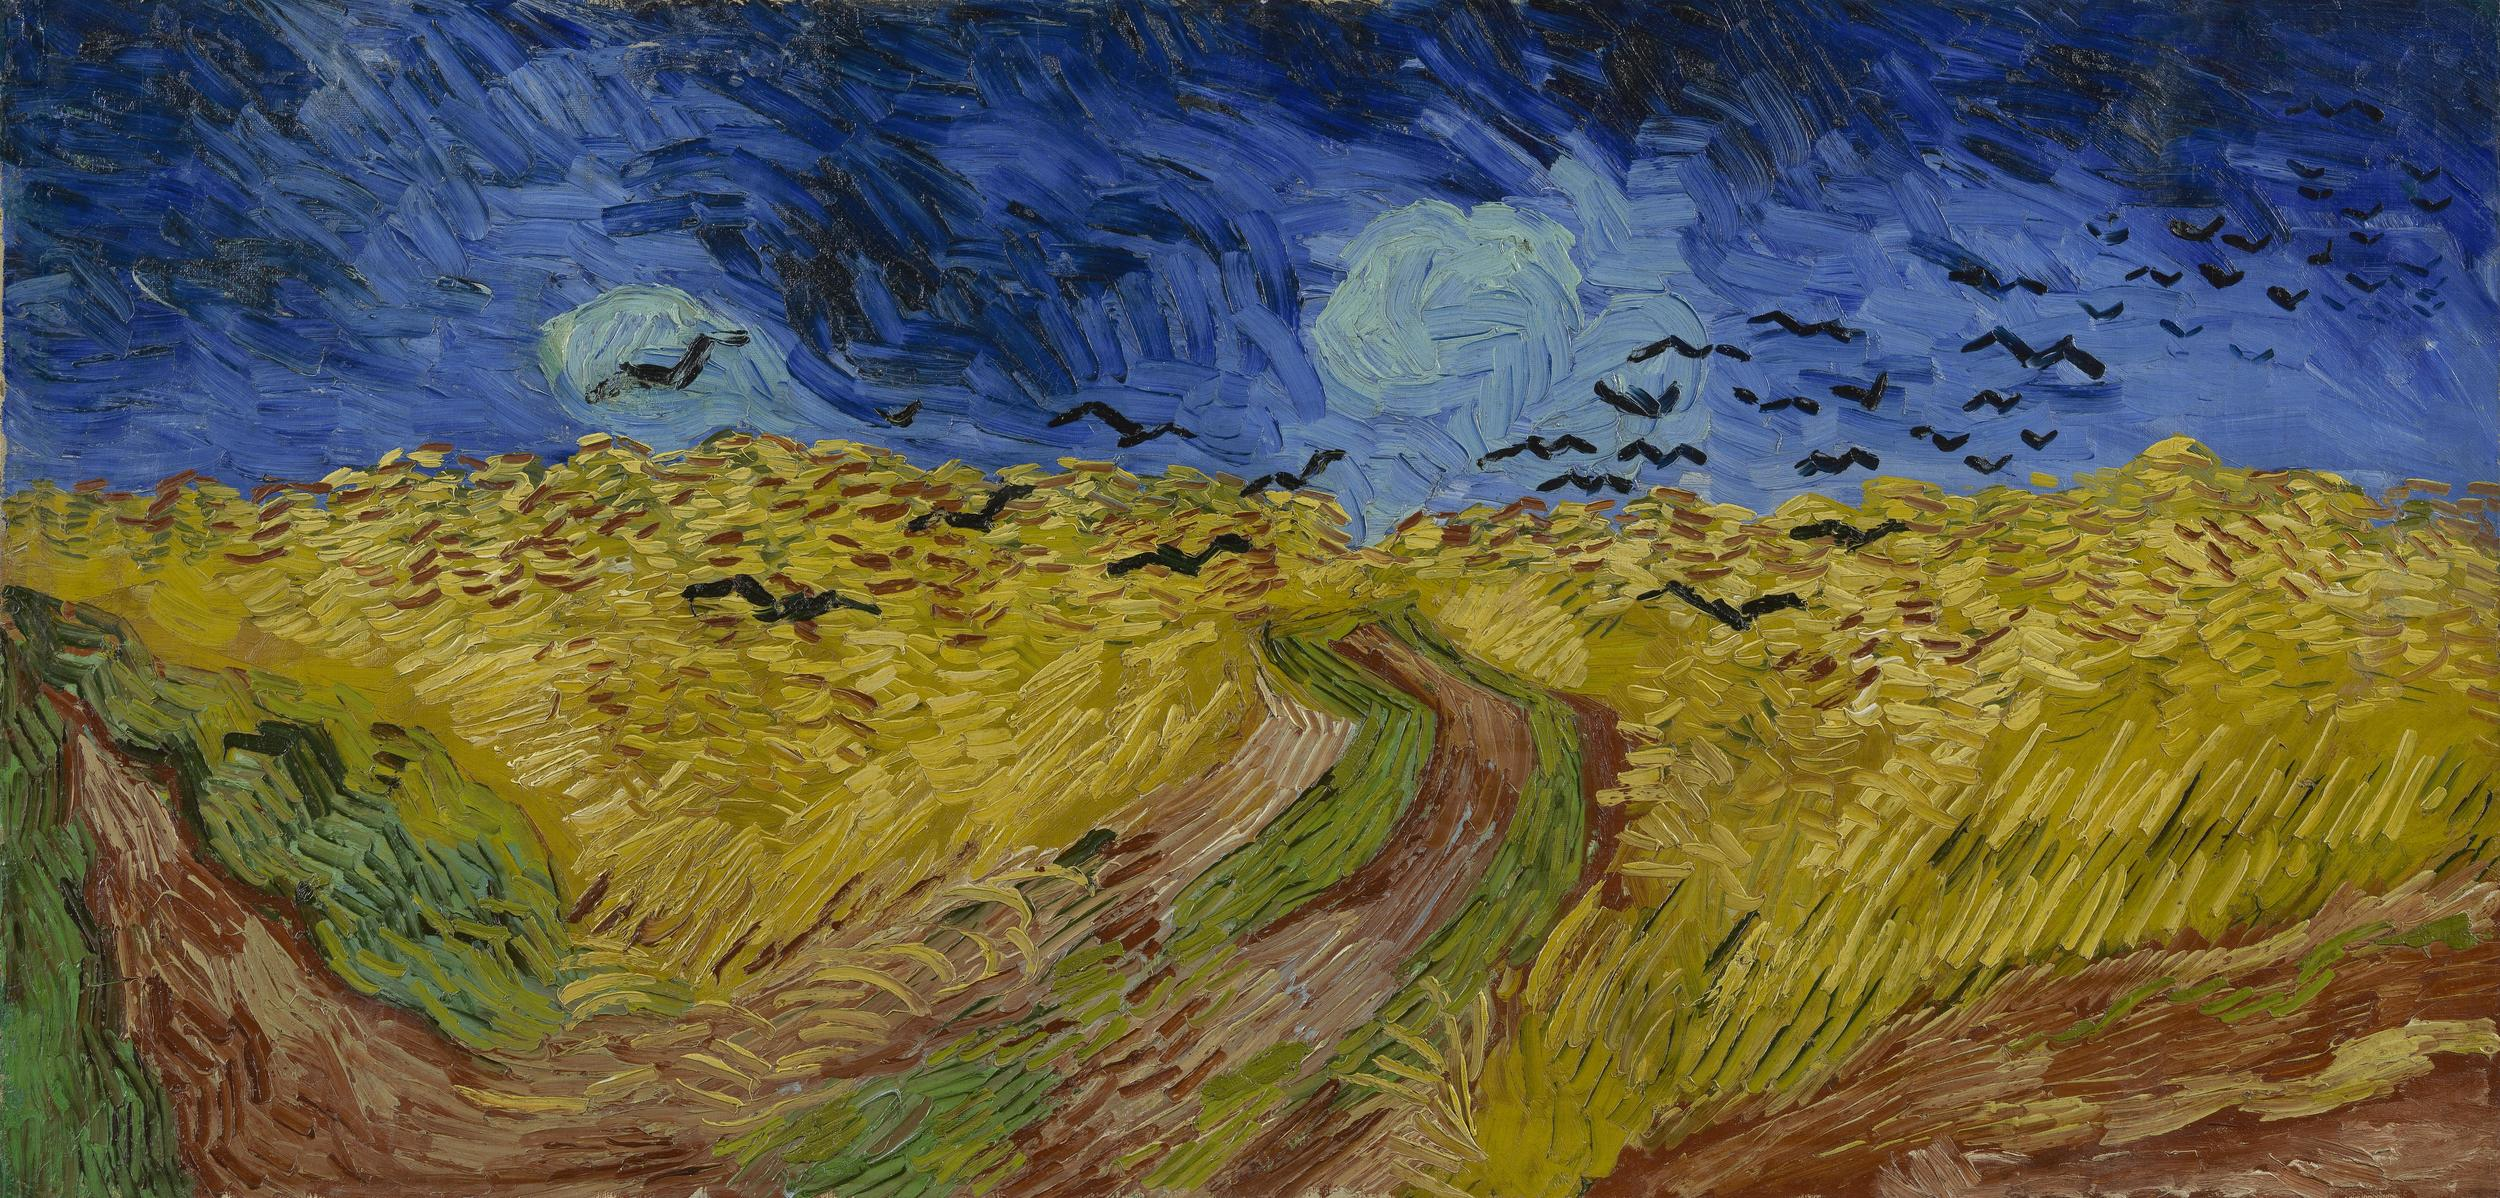 http://www.vangoghmuseum.nl/en/whats-on/collection-highlights